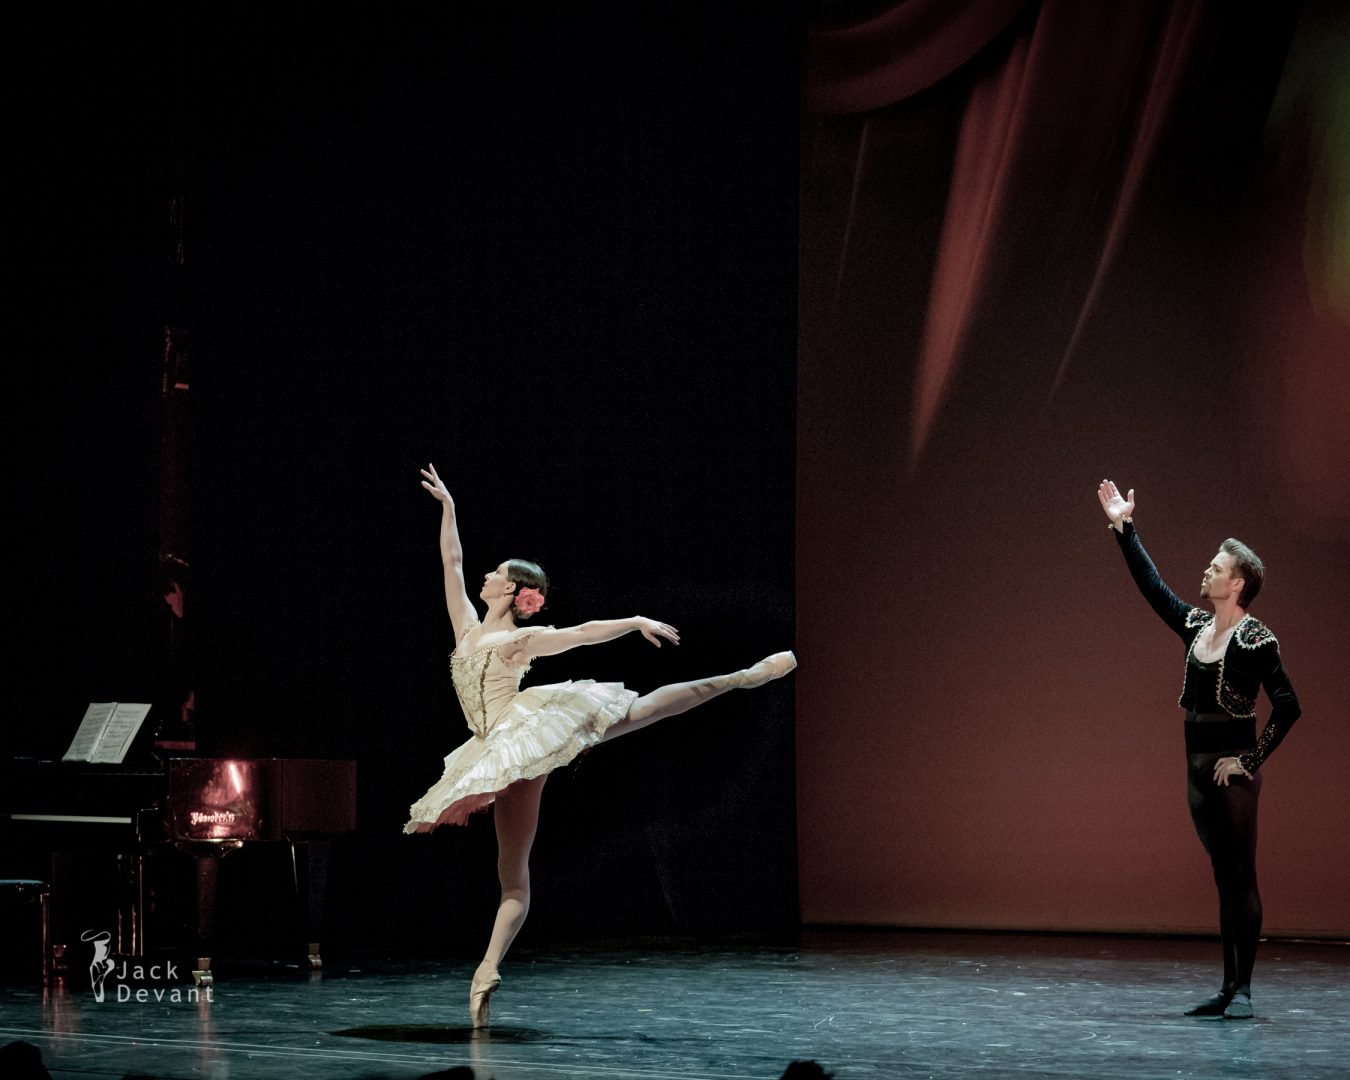 Ksenia Ryzhkova and Matthew Golding in Don Quixote Pas de deux